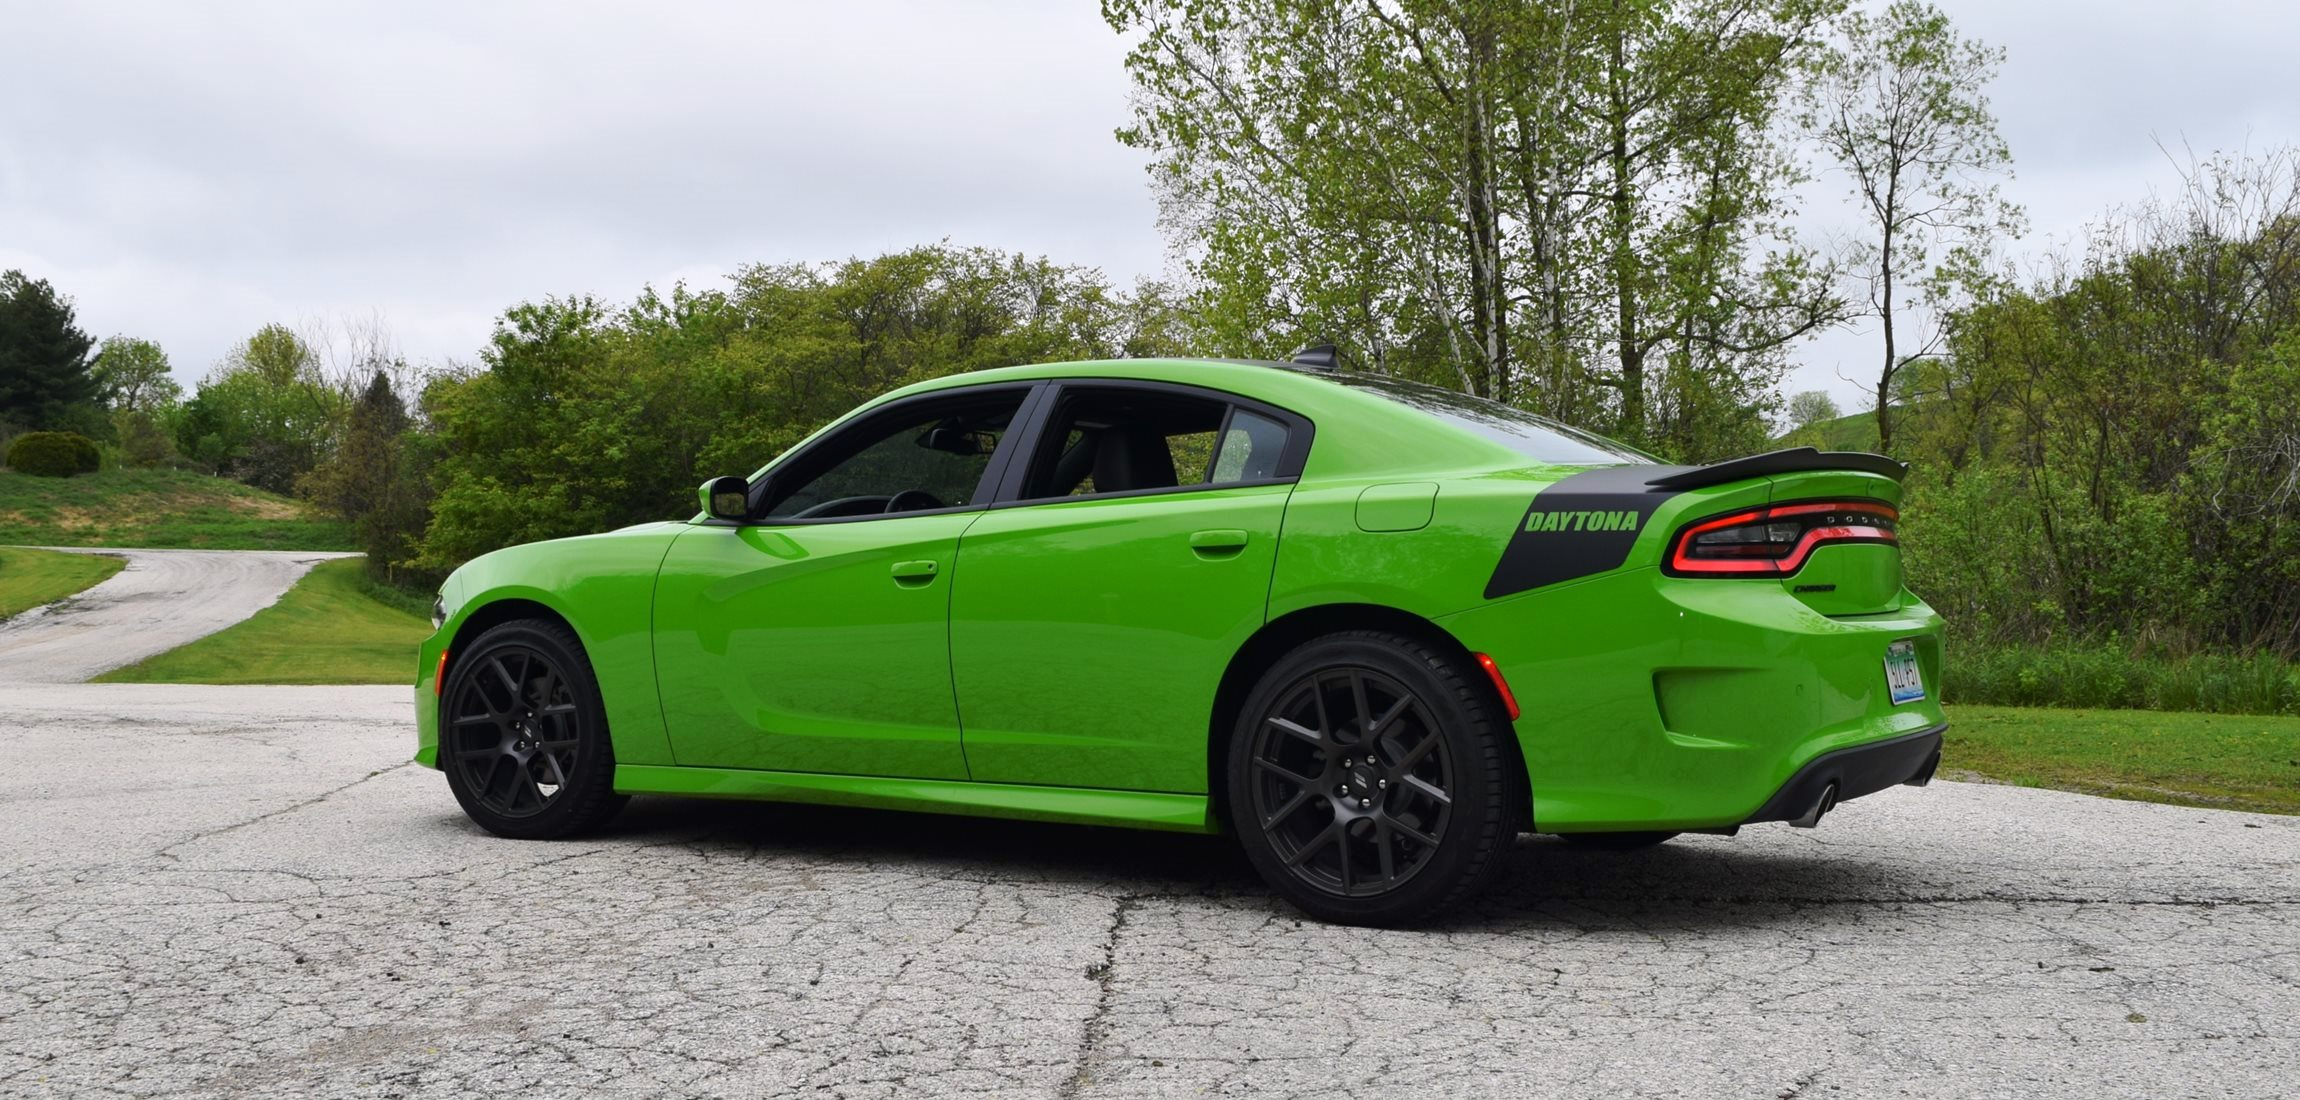 2017 Dodge Charger DAYTONA 27